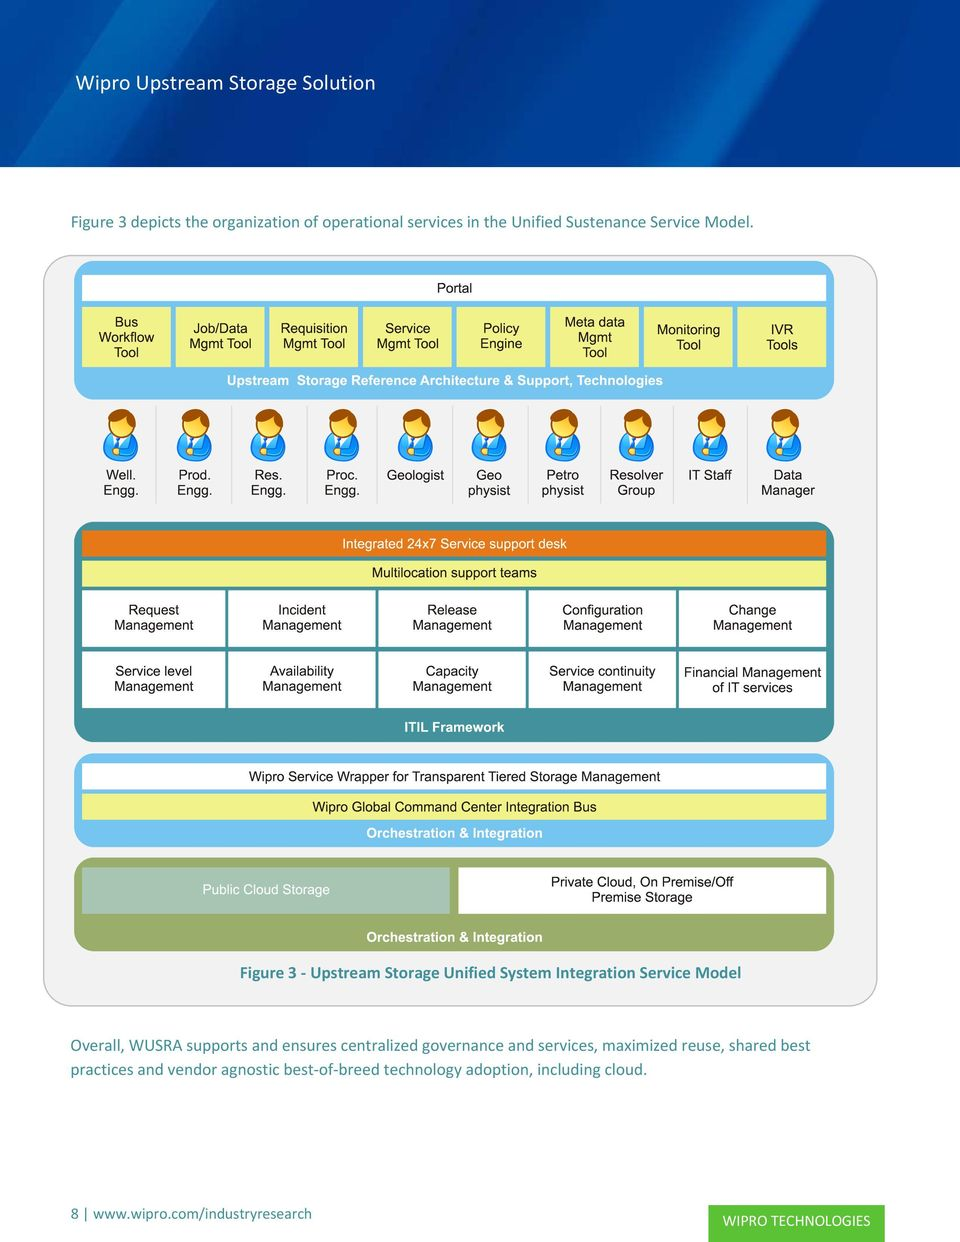 Figure 3 Upstream Storage Unified System Integration Service Model Overall, WUSRA supports and